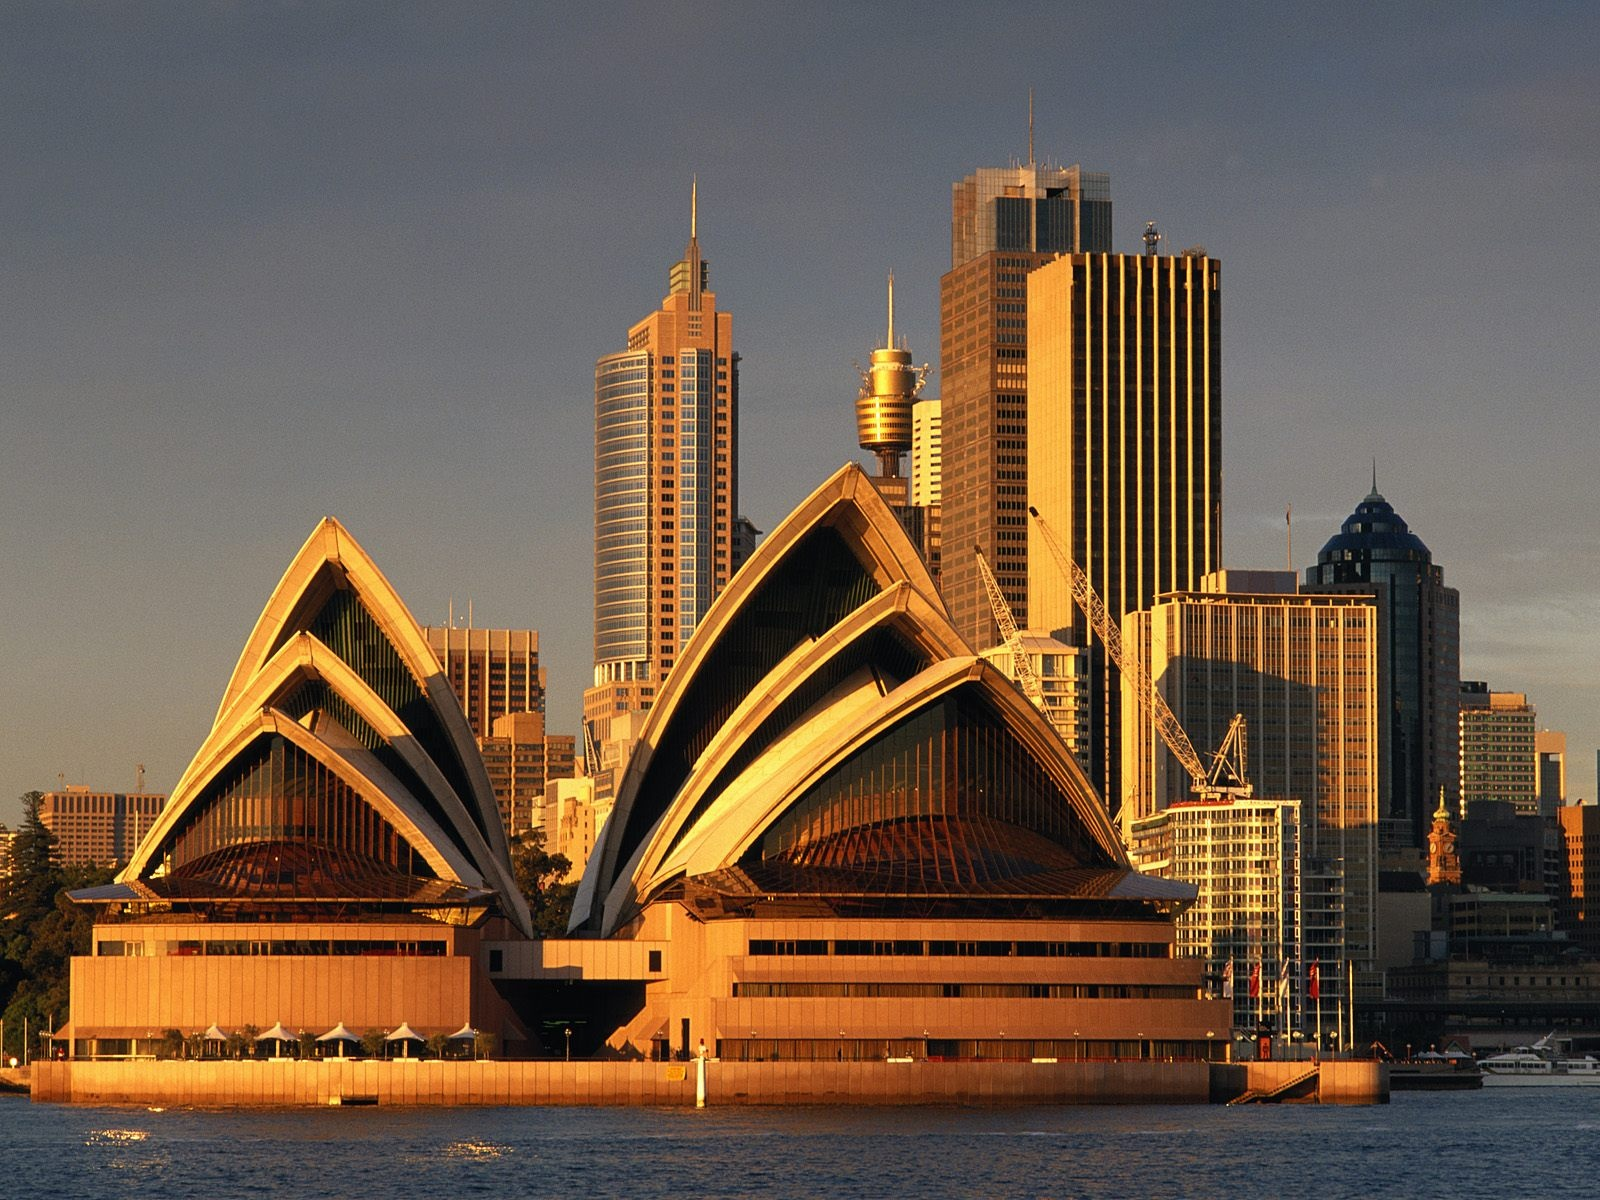 Hd new wallpaper sydney opera house pictures for Sydney opera housse